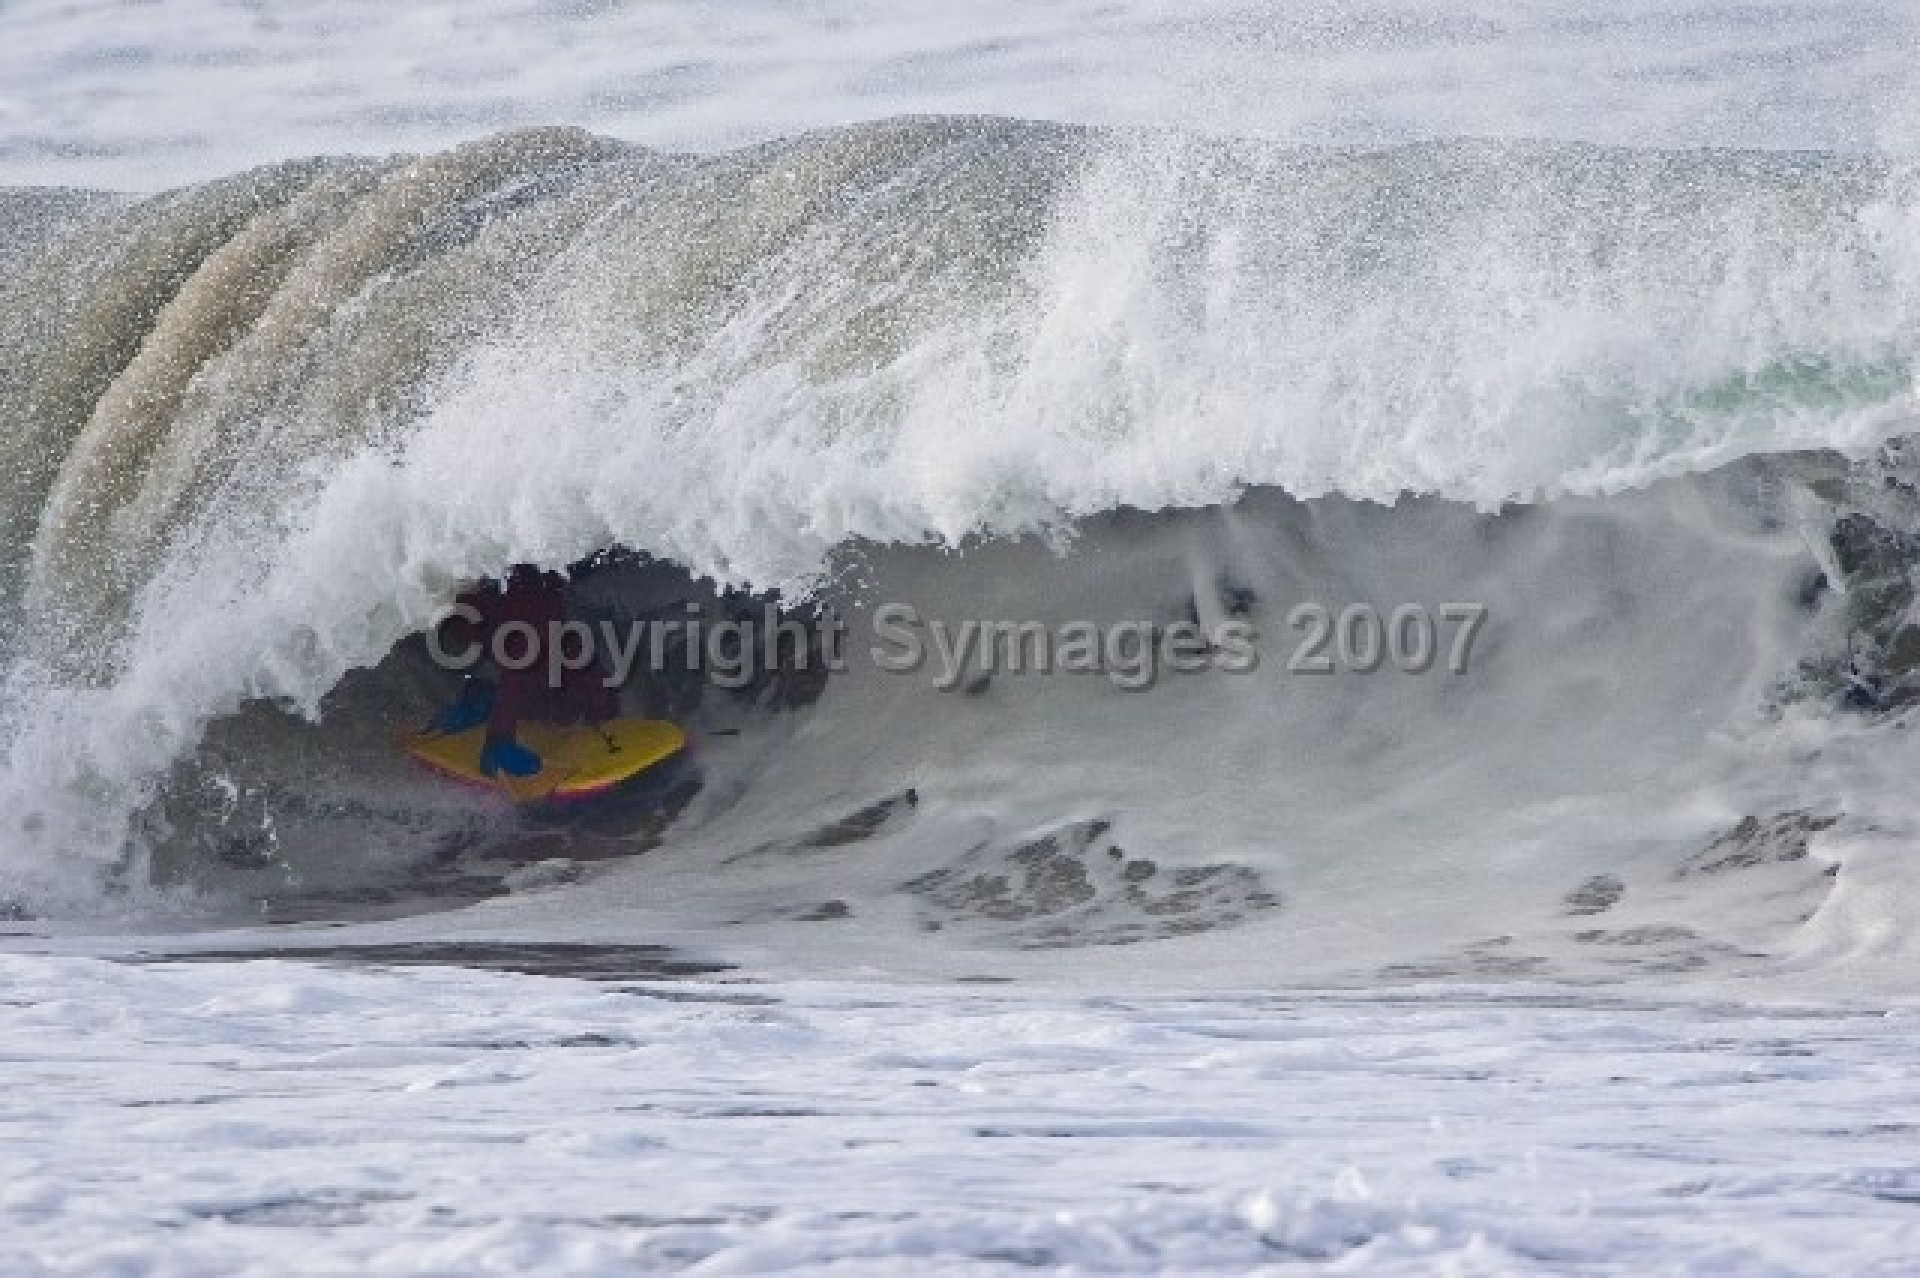 Clive Symm's photo of Porthtowan